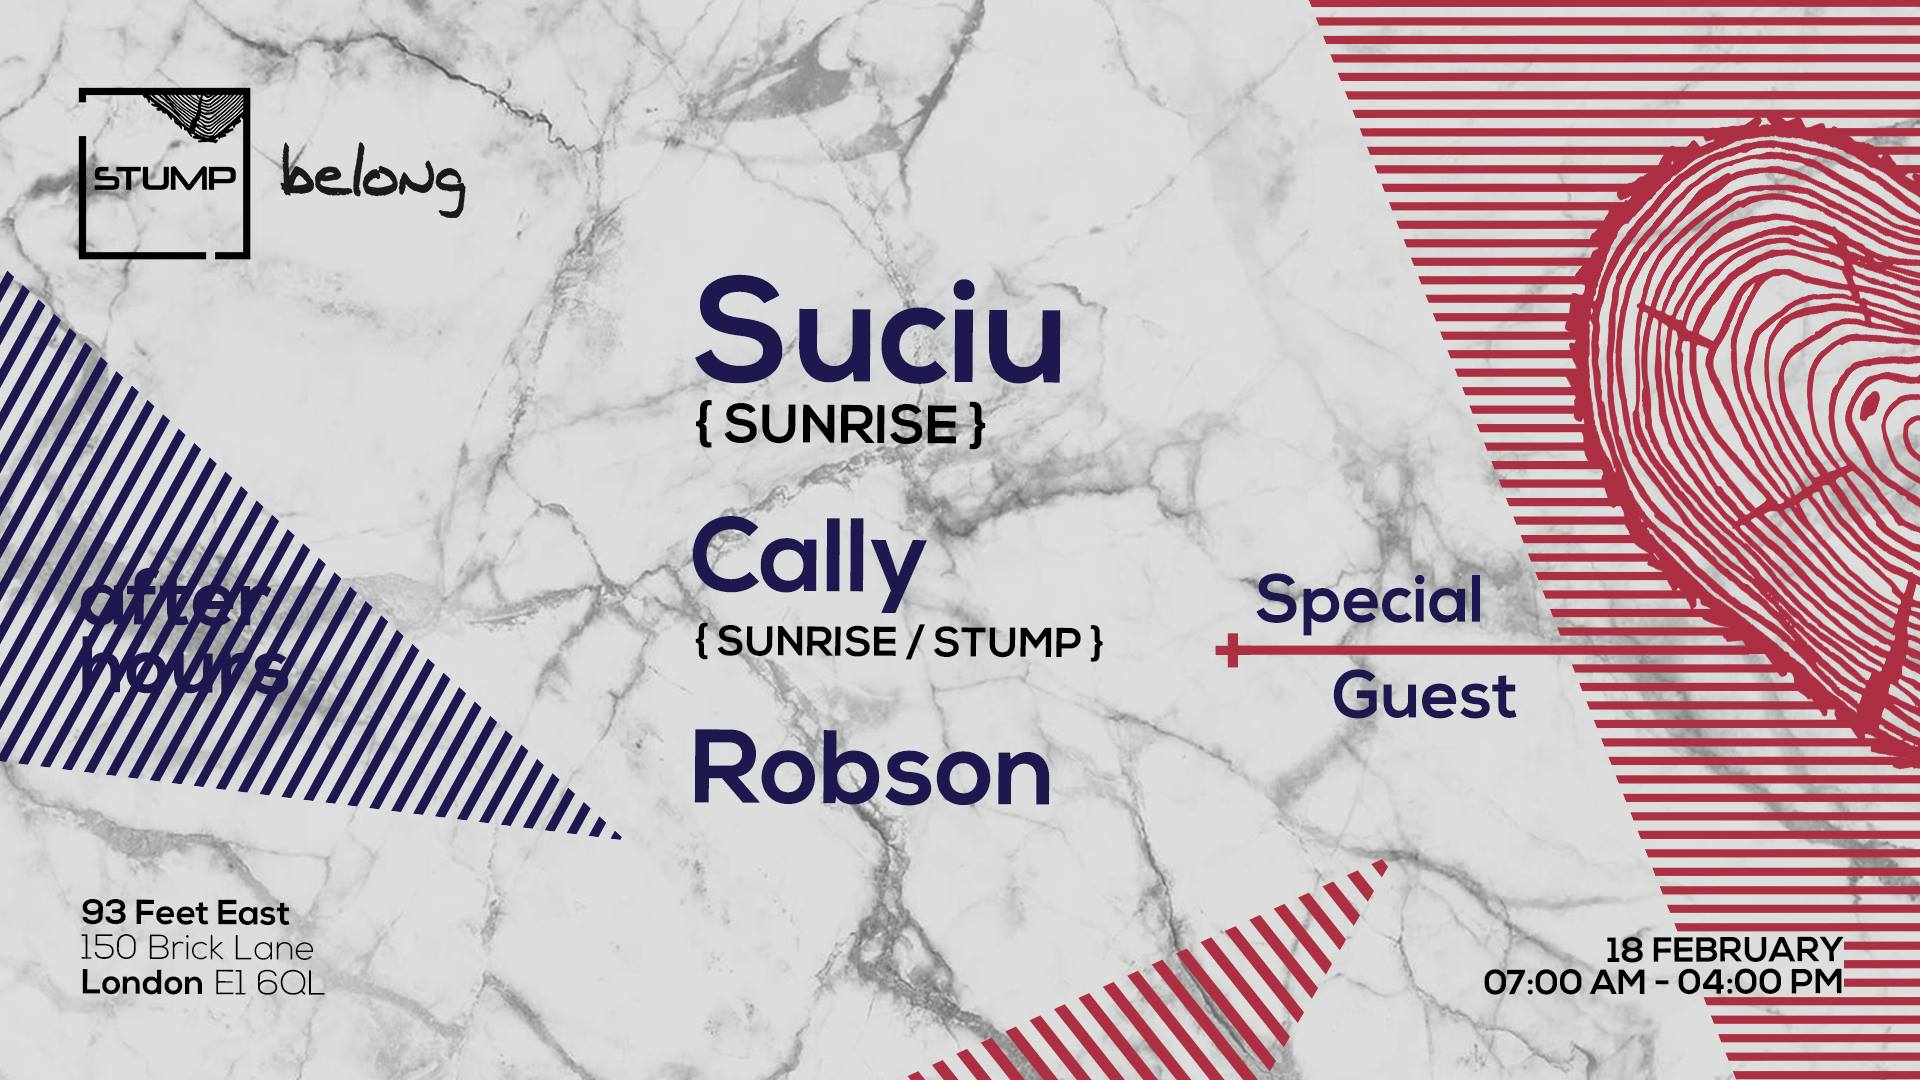 Tickets For 18-02-2018 Stump x Belong AM with Suciu,Cally,Robson,Special Guest